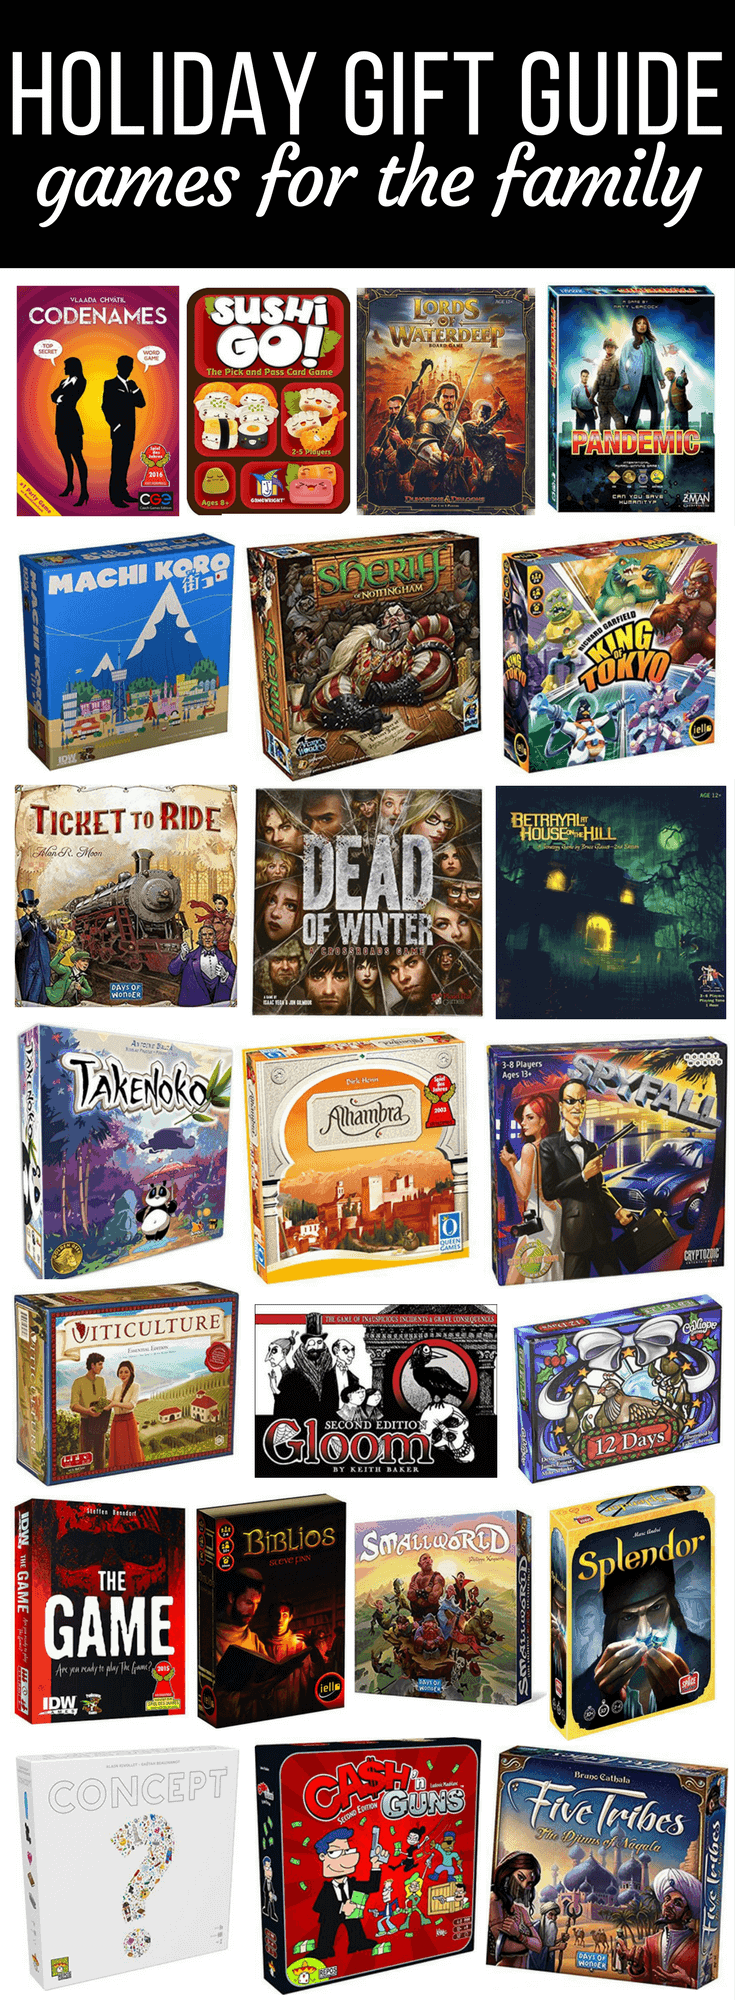 A Christmas gift guide for families who love to play games. Ideas for kids for Christmas, ideas for family gifts, and tons of board game gift ideas.